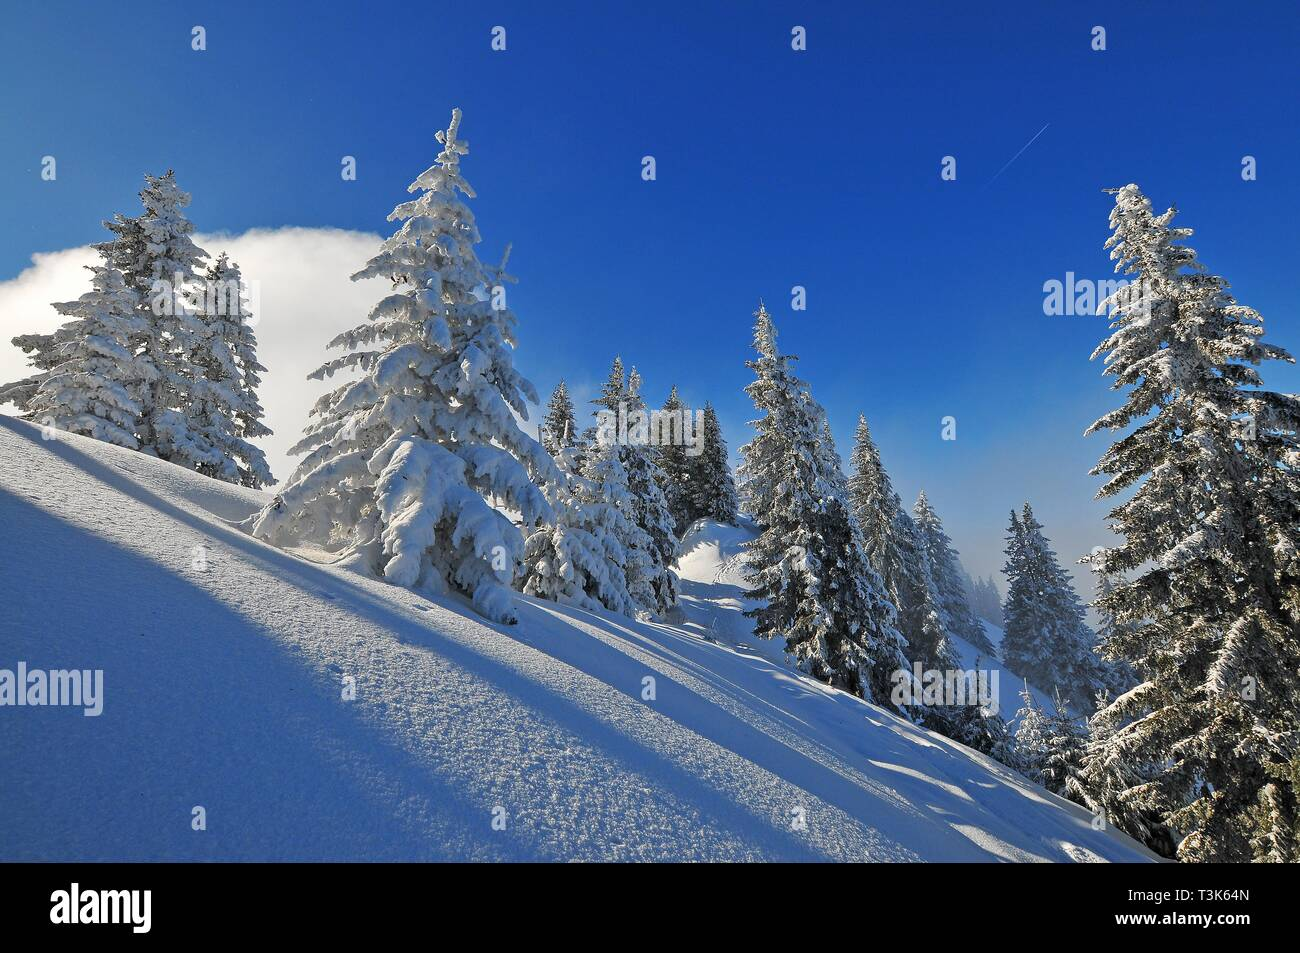 Mountain forest in winter, Laber, Oberammergau, Upper Bavaria, Bavaria, Germany, Europe - Stock Image